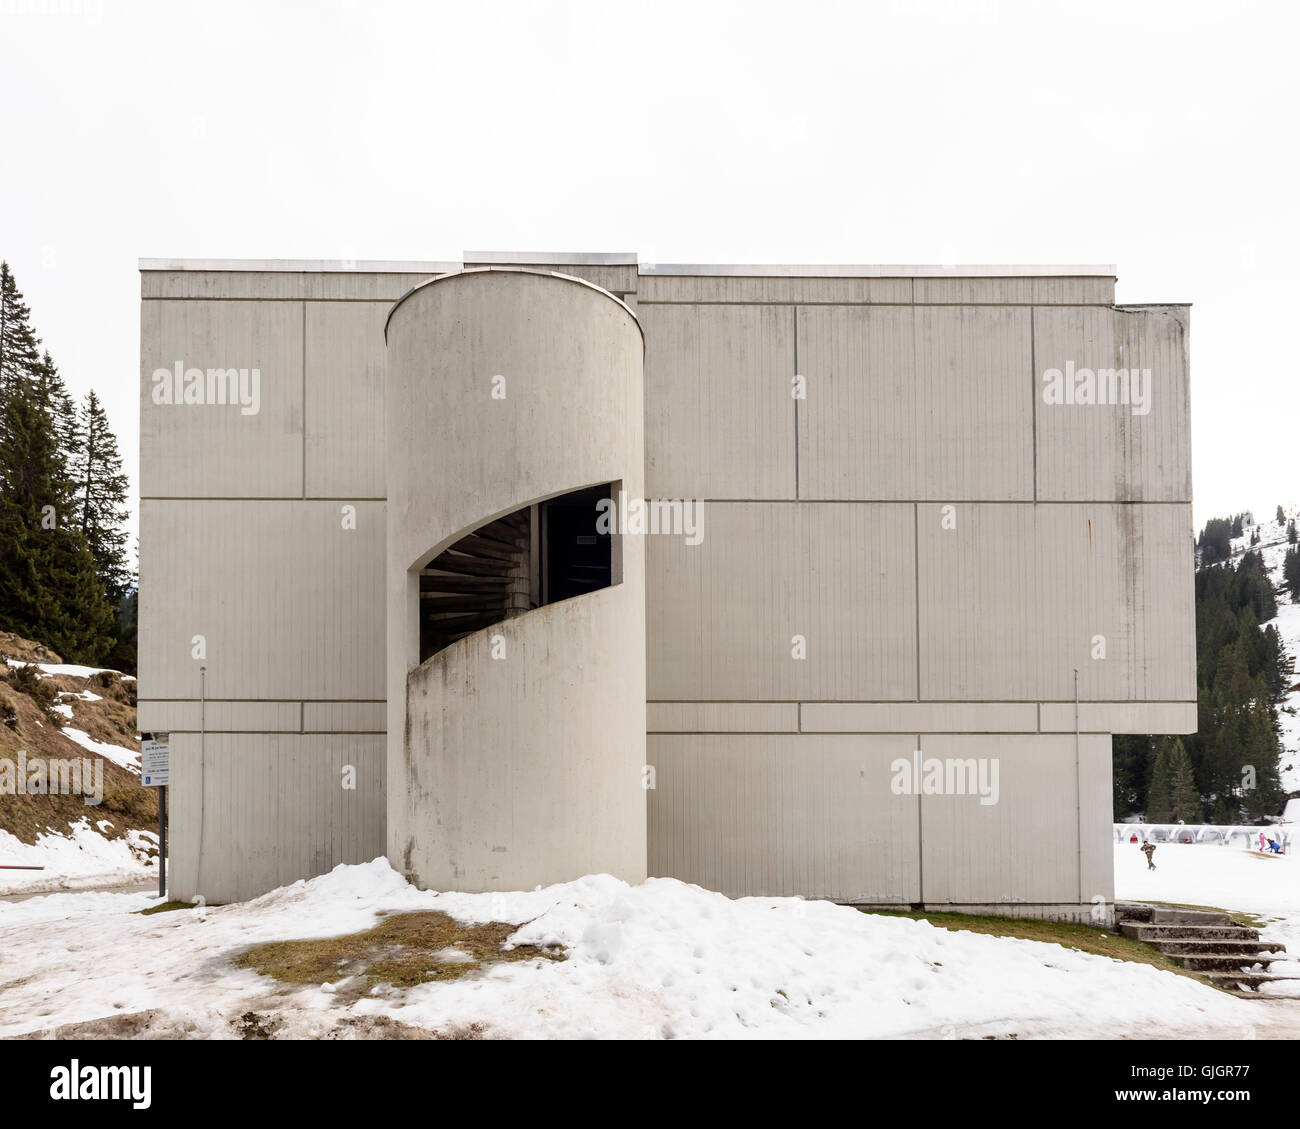 Building and staircase. Flaine, Flaine, France. Architect: Marcel Breuer, 1969. Stock Photo